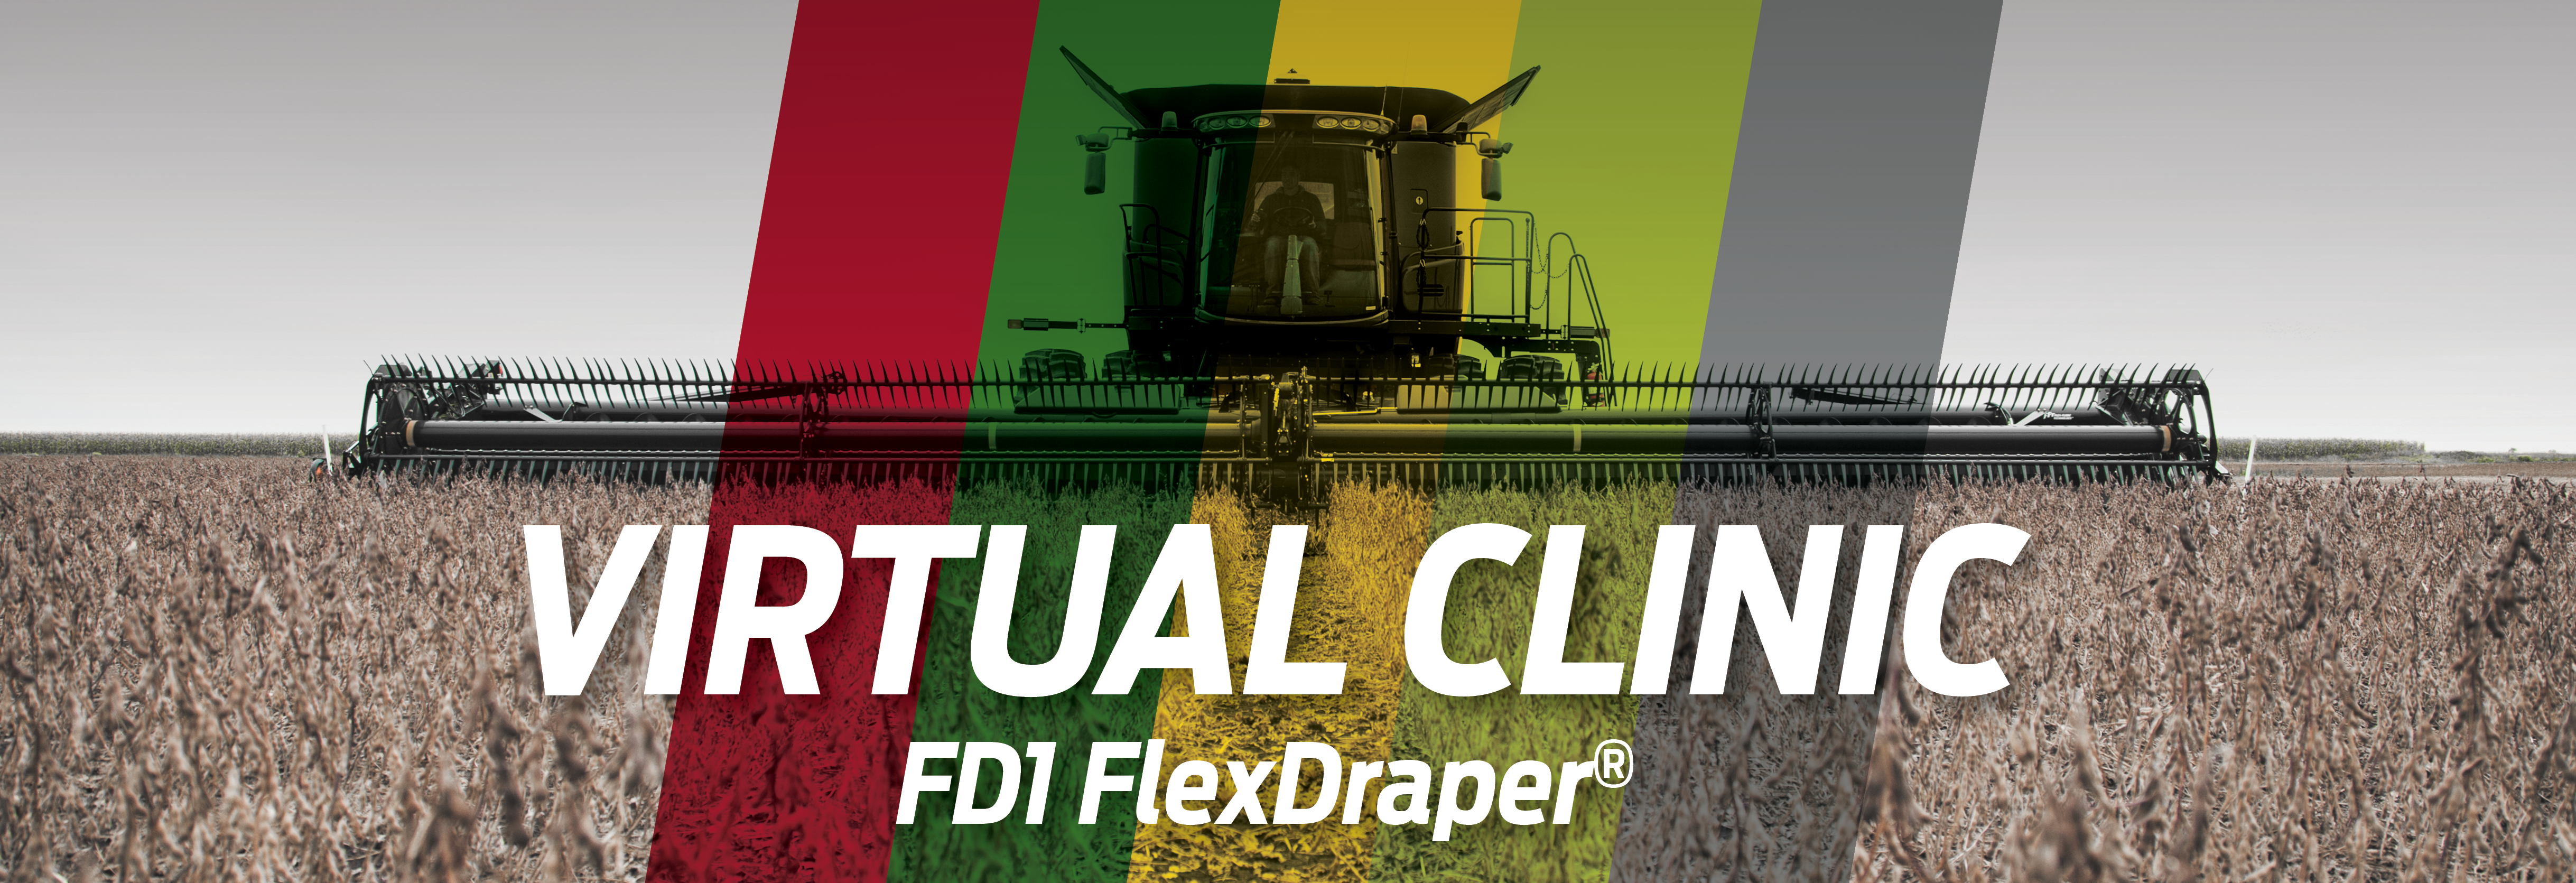 FD1 FlexDraper Virtual Clinic